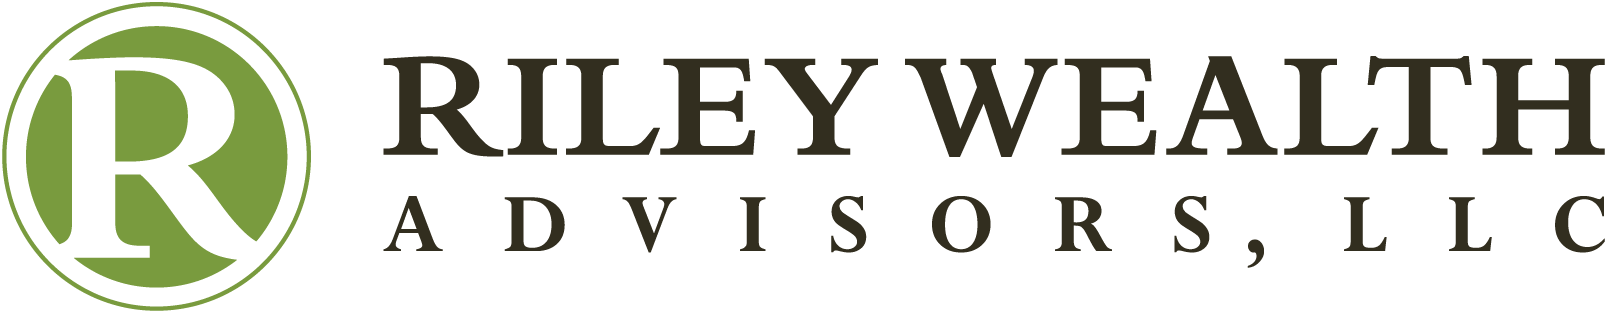 Riley Wealth Advisors LLC